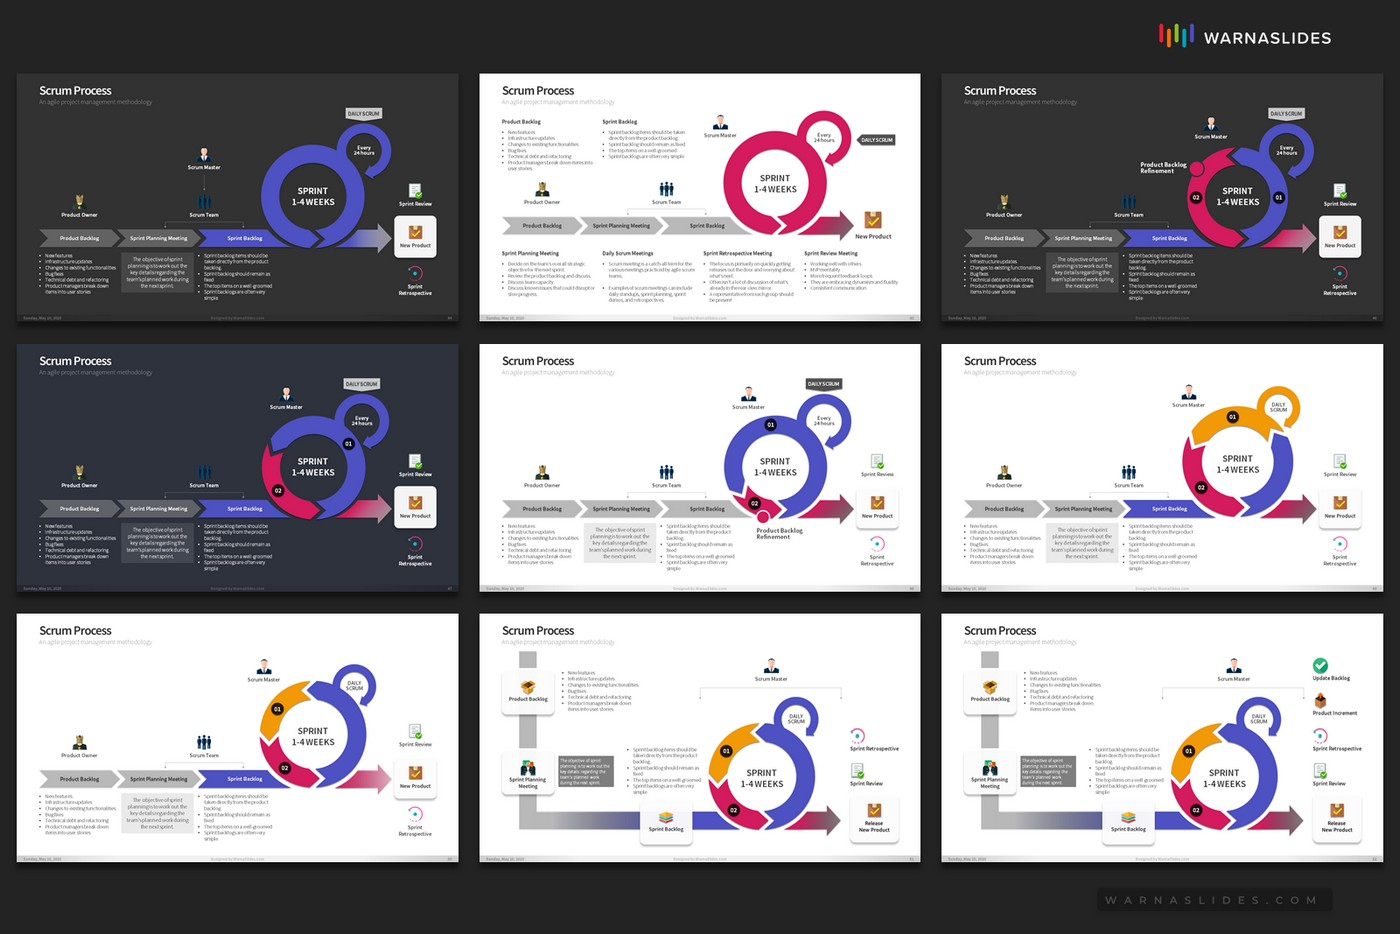 Agile-Scrum-Framework-Scrum-Process-Diagram-PowerPoint-Template-for-Business-Pitch-Deck-Professional-Creative-PowerPoint-Icons-016